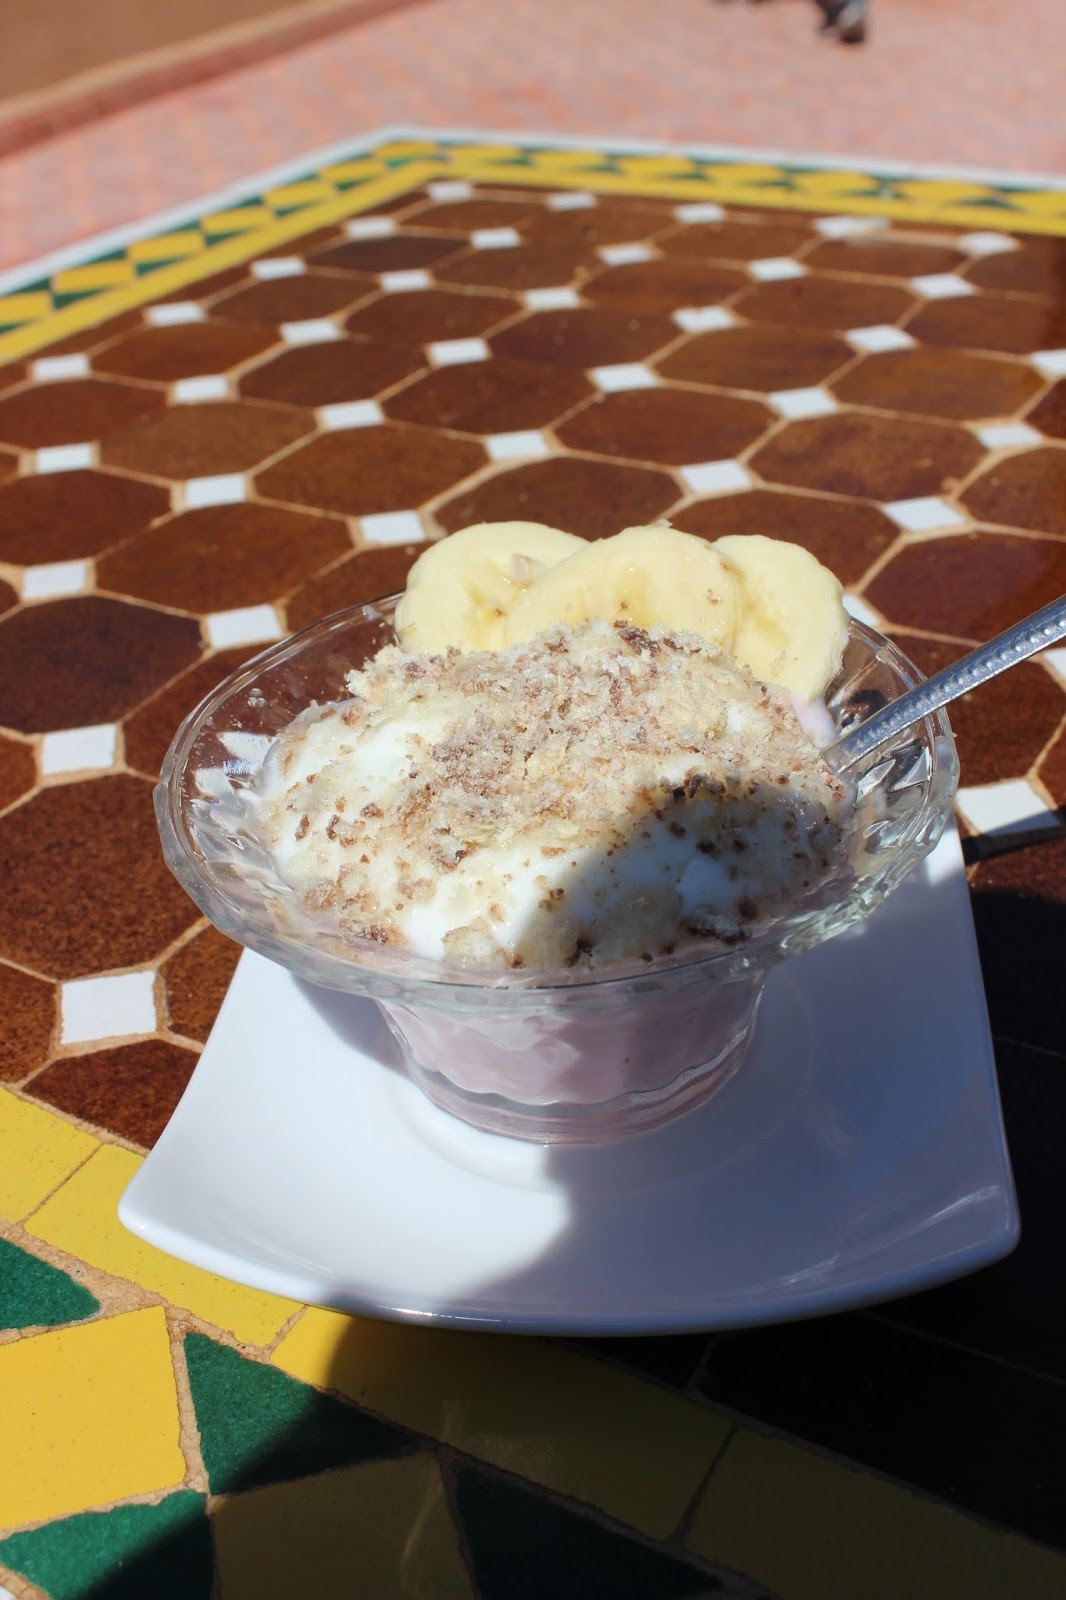 Yoghurt topped with banana